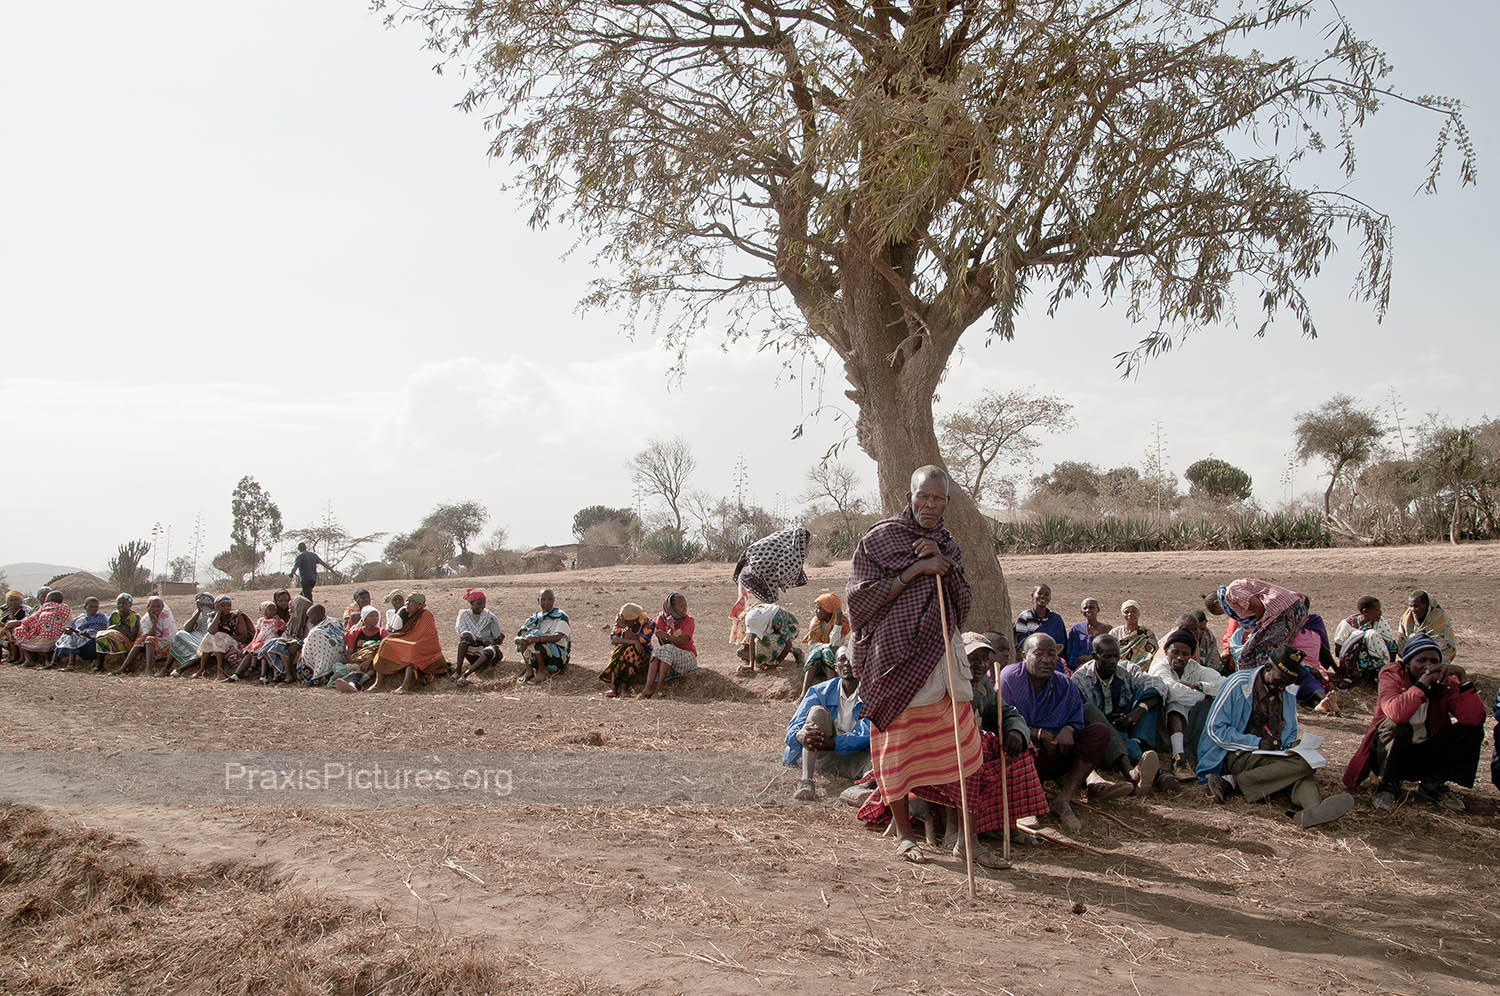 COMMUNITY OF NGORBOB - The community of Ngorbob gathers to explain their situation, surrounded by their now barren farmlands.